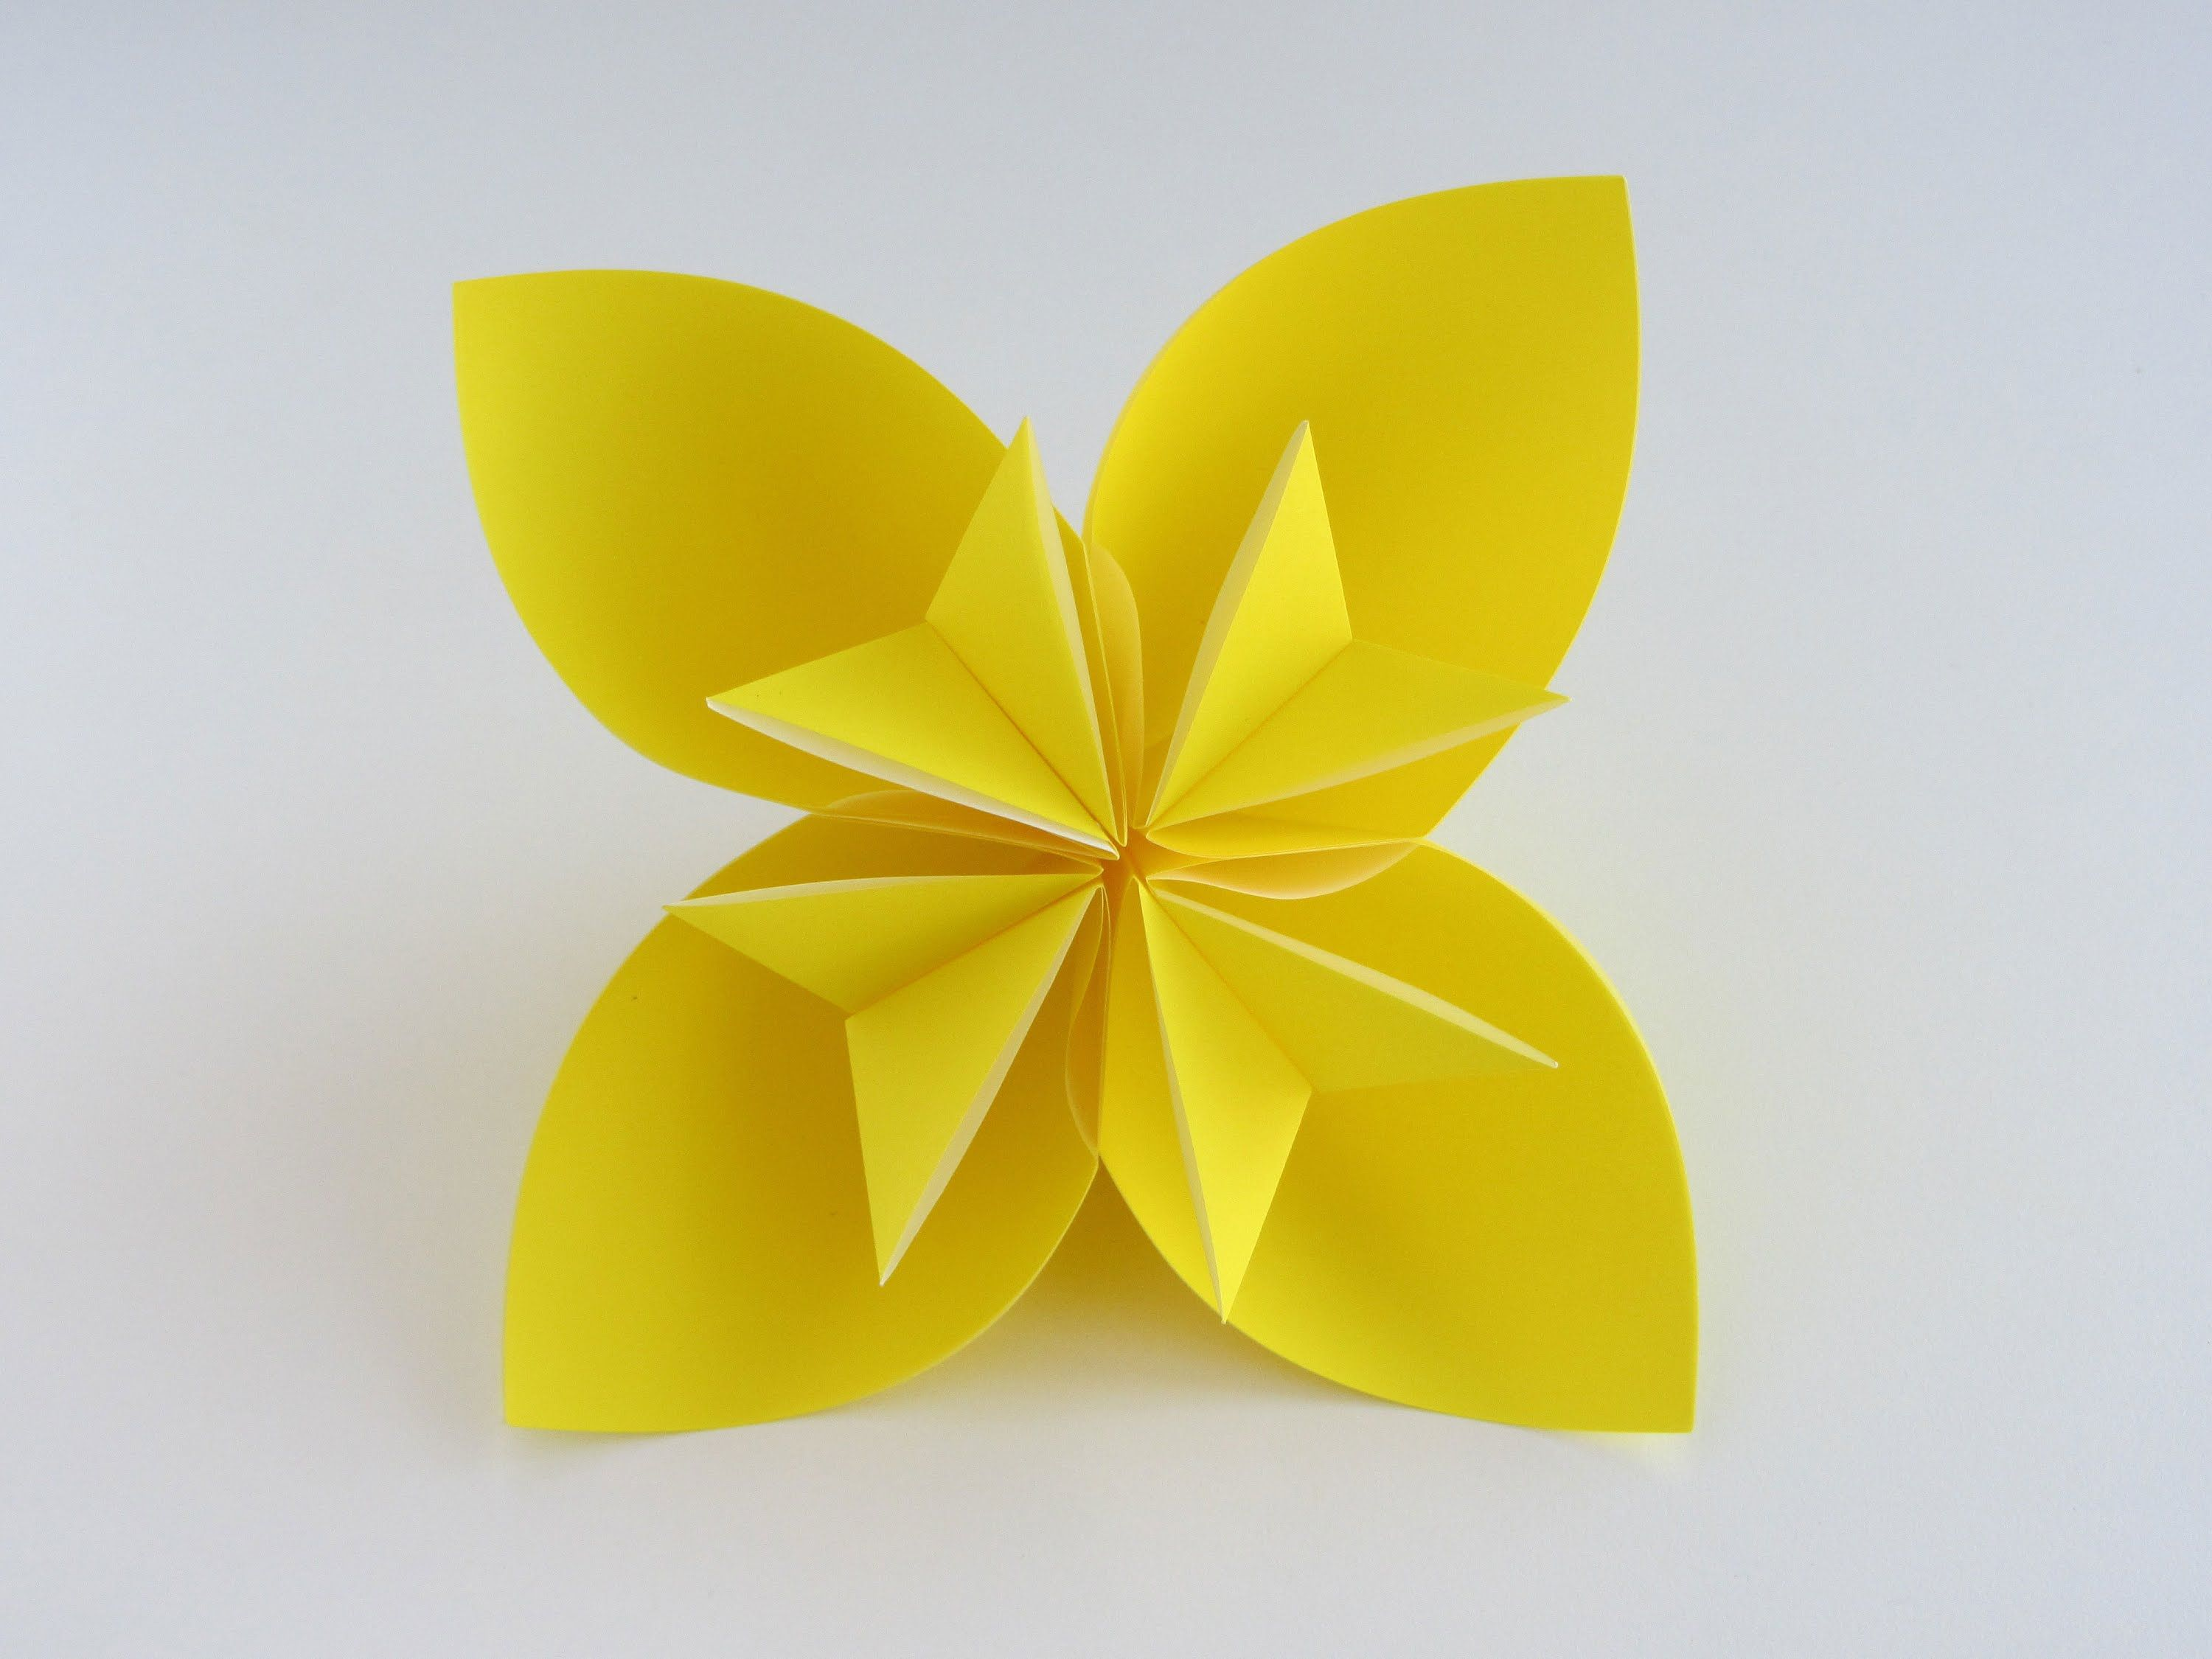 How to make the easy origami kusudama flower step by step how to make the easy origami kusudama flower step by step instructions see our website for more origami instructions origami instructions mightylinksfo